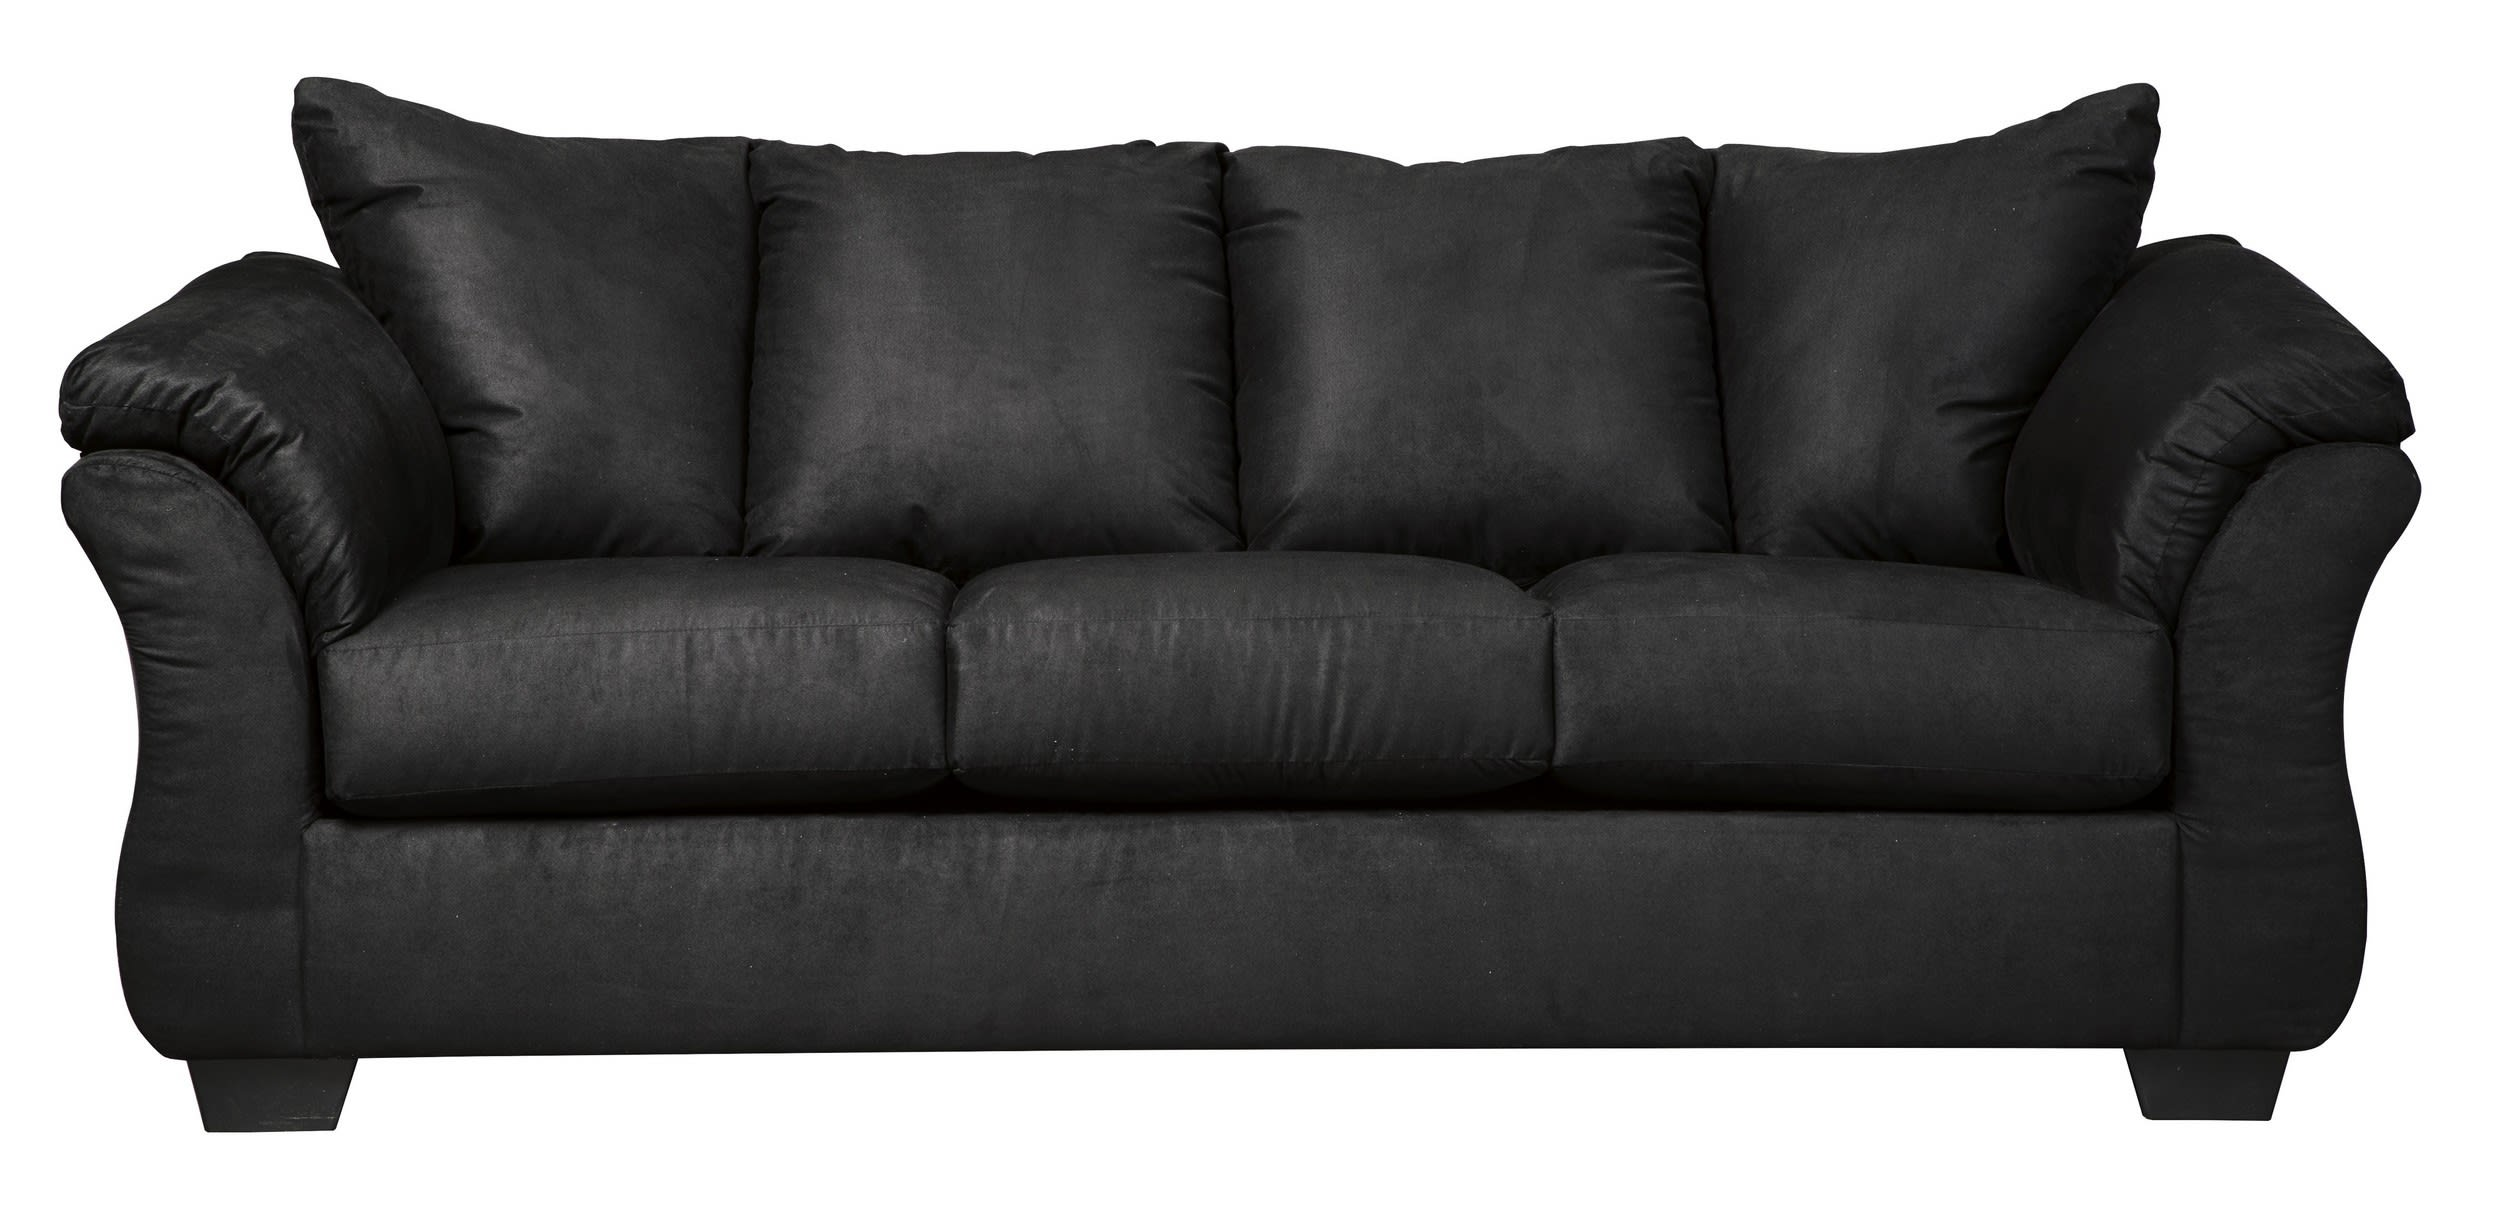 Ashley Darcy Black Full Sleeper Sofa